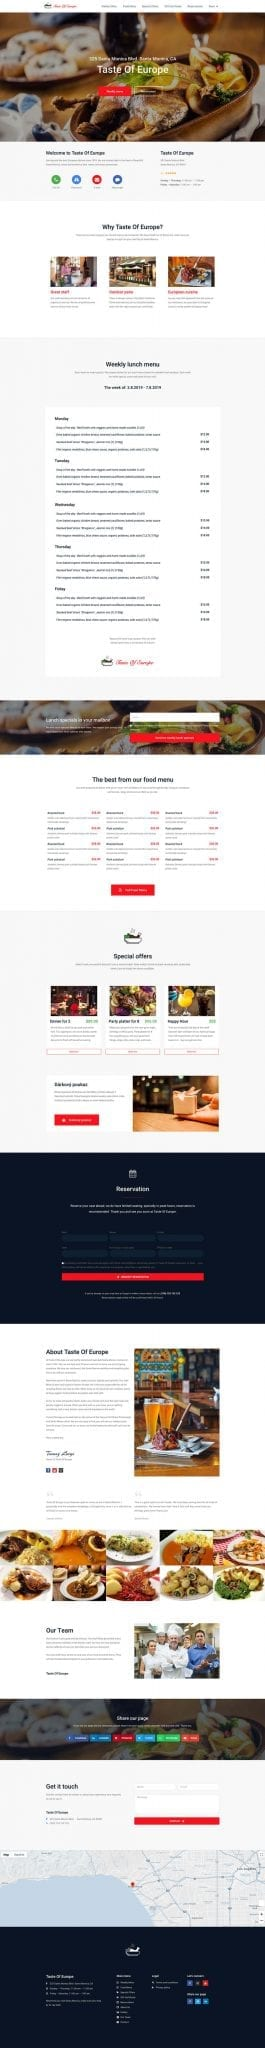 Restaurant website - complete website preview